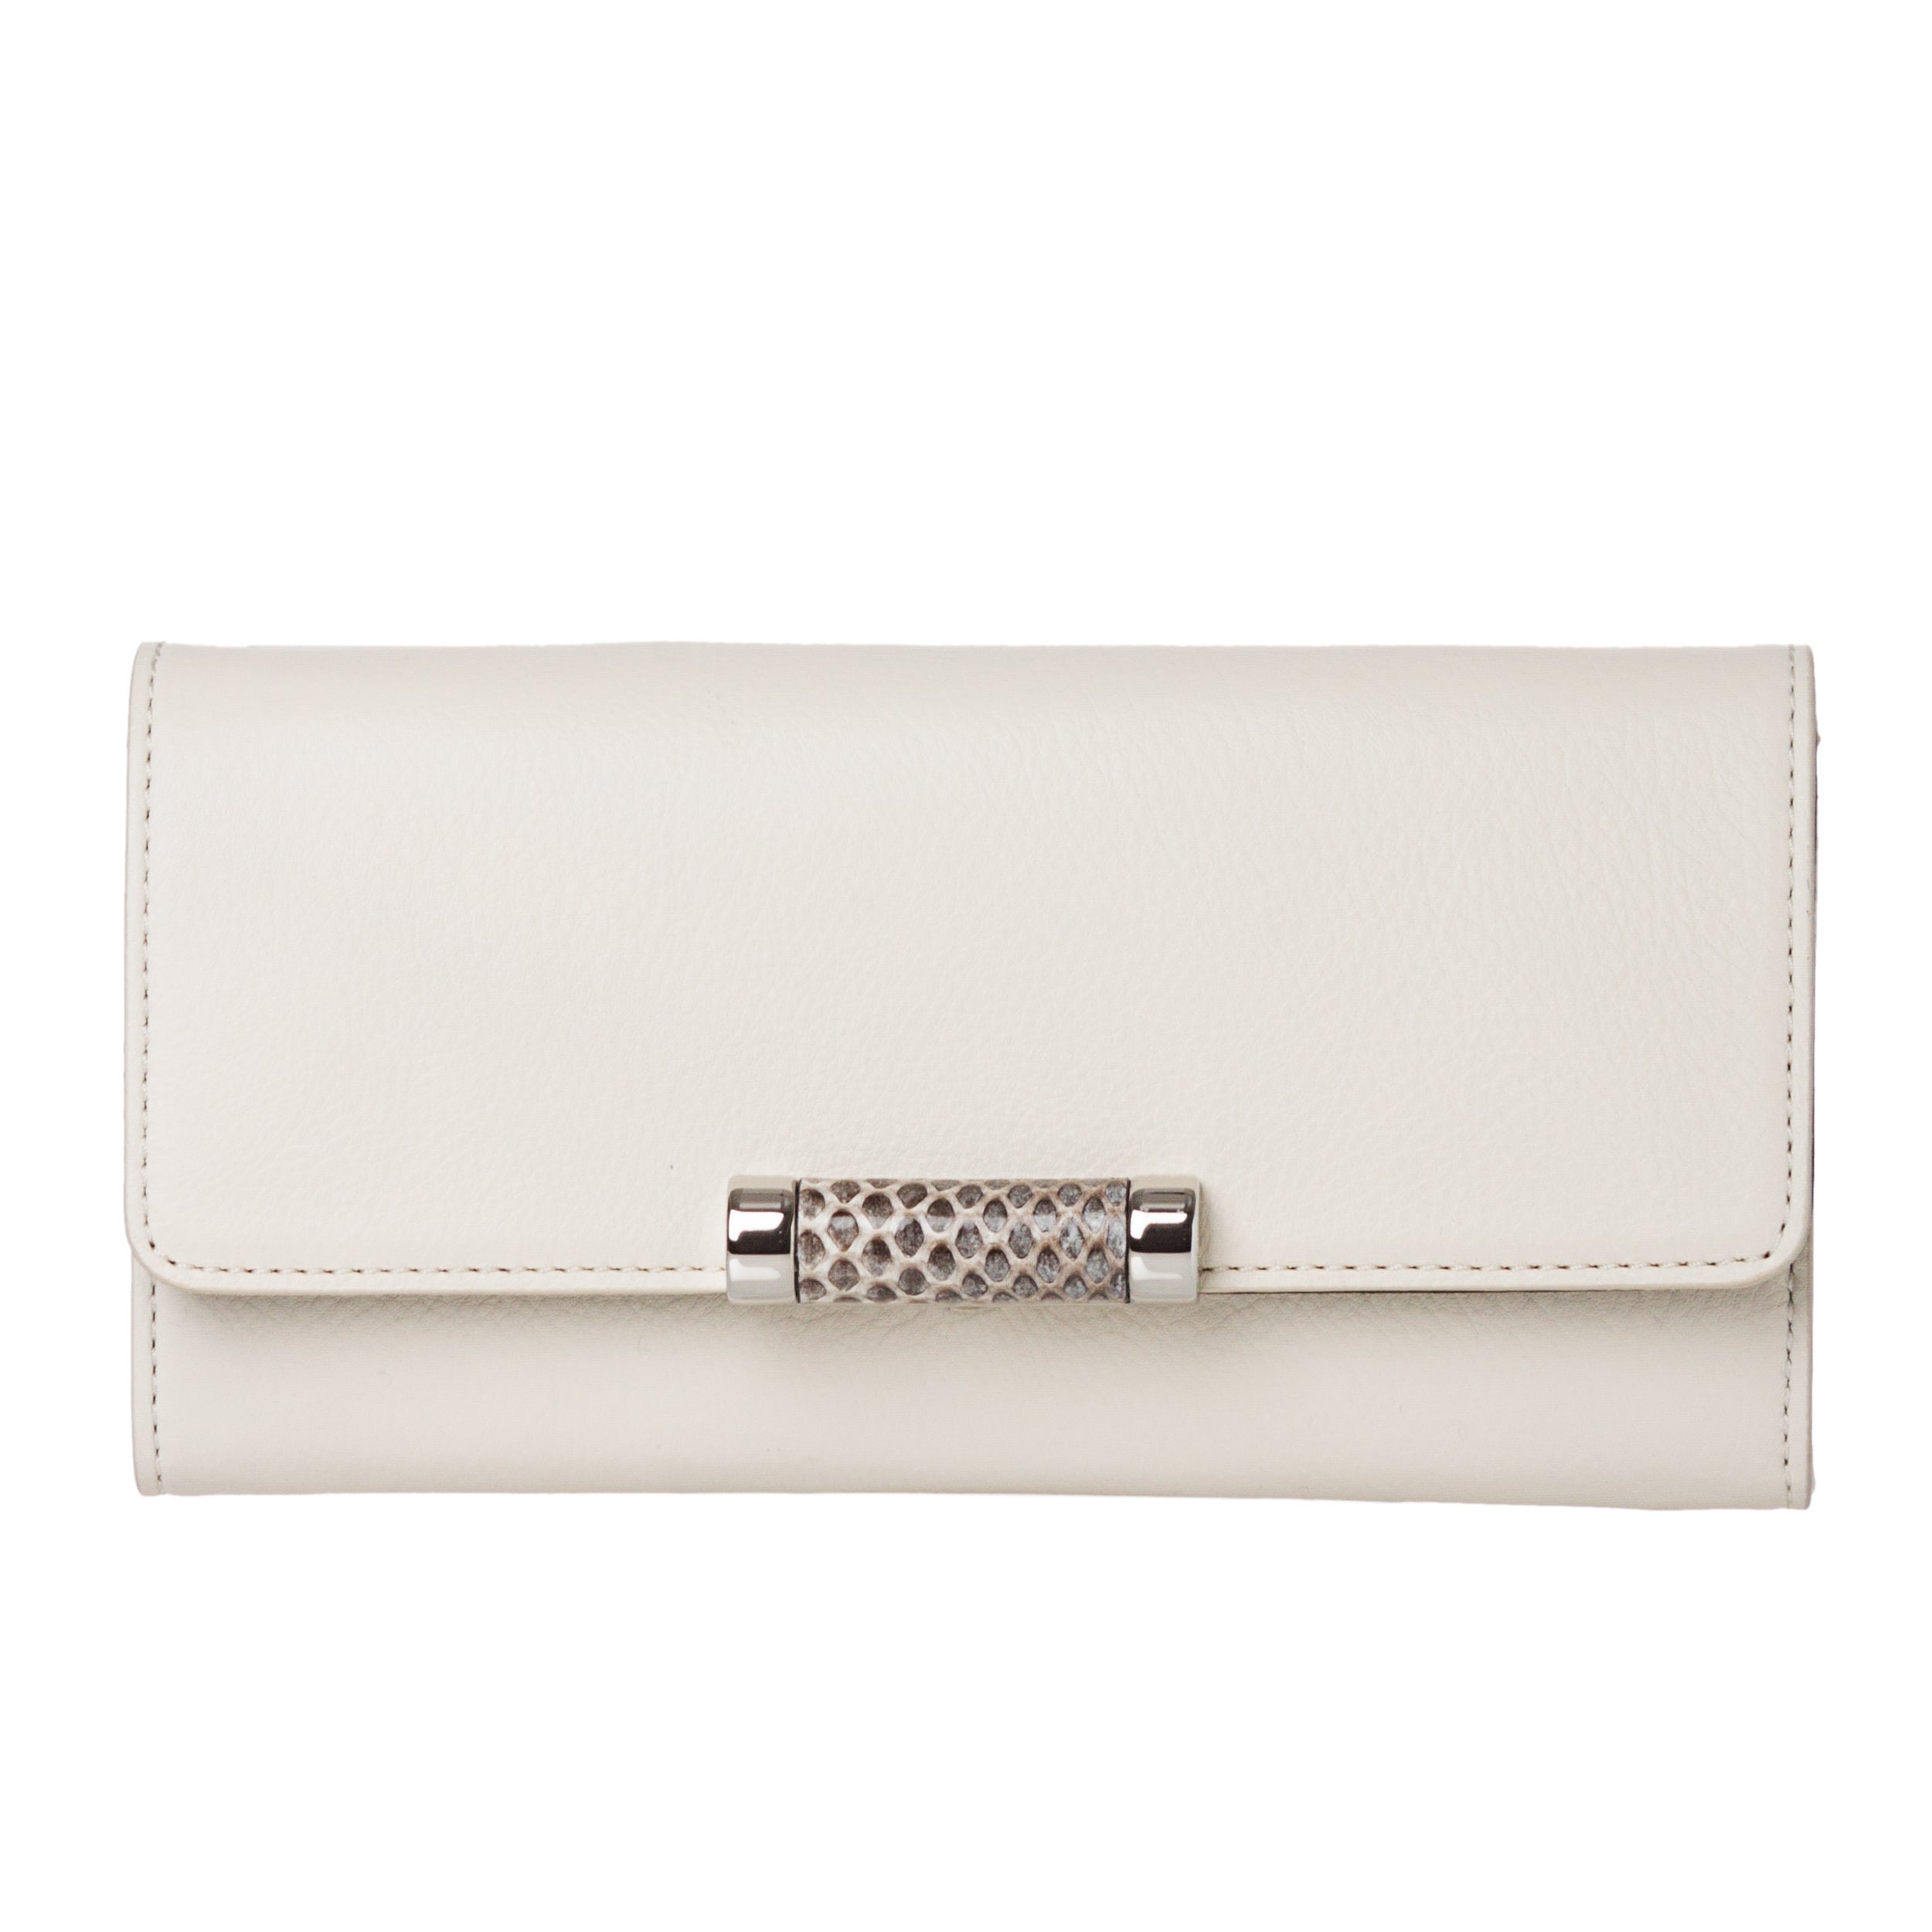 Michael Kors 'Tonne' White Leather Continental Wallet